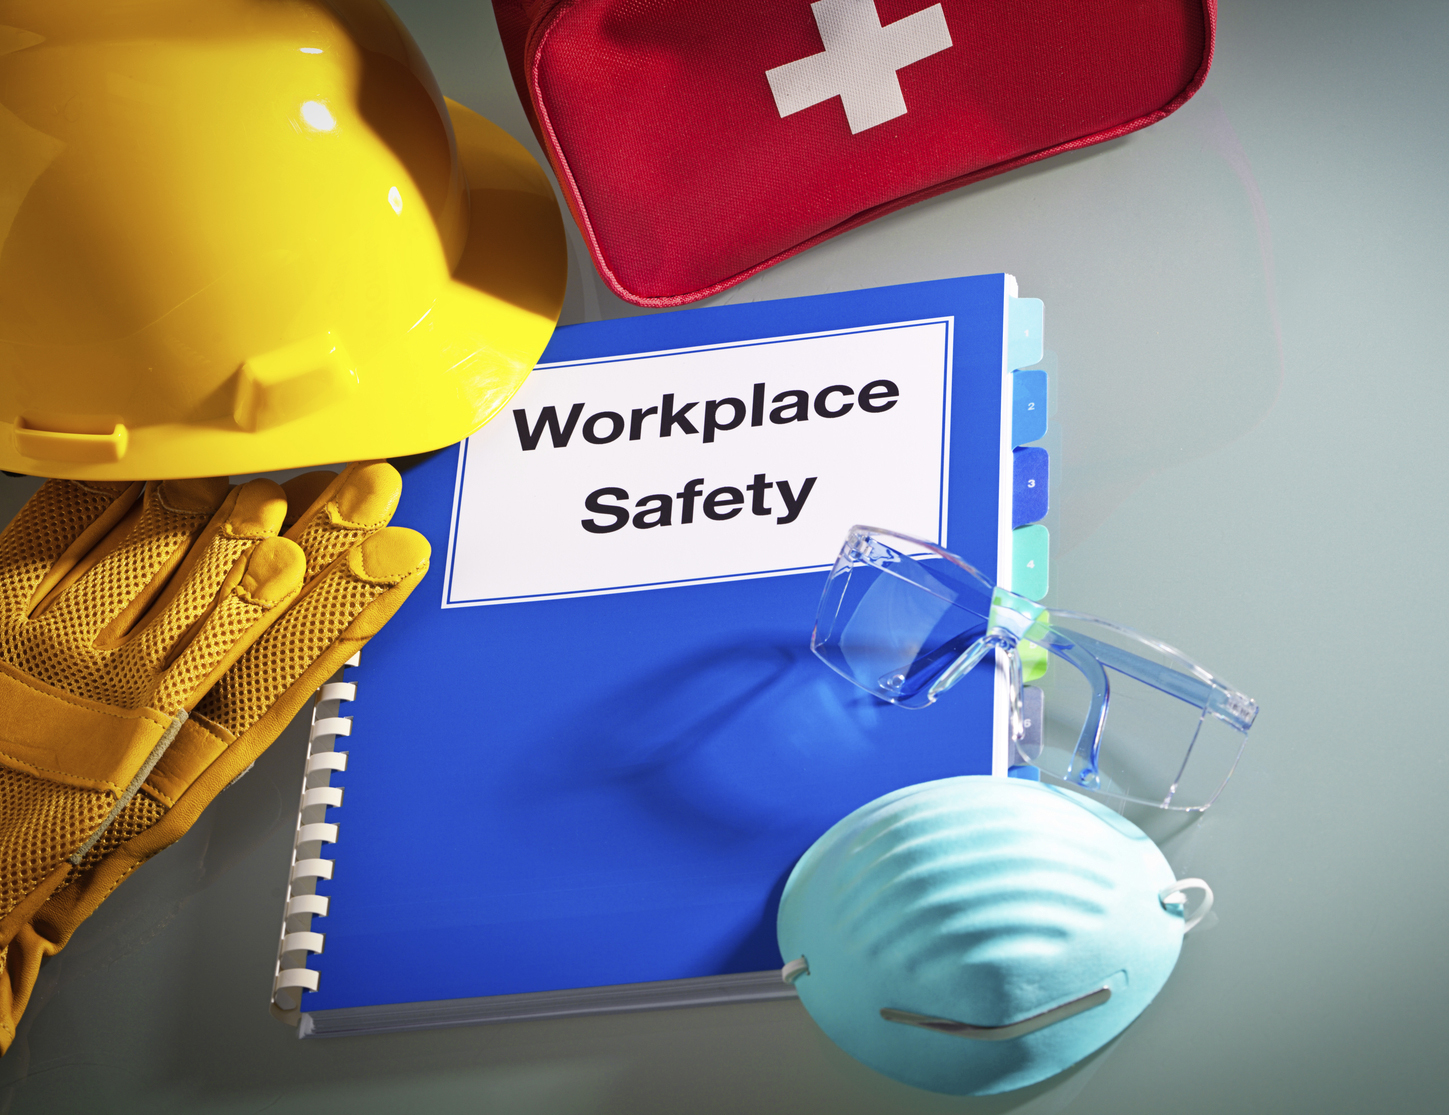 safety manual istock92086861medium